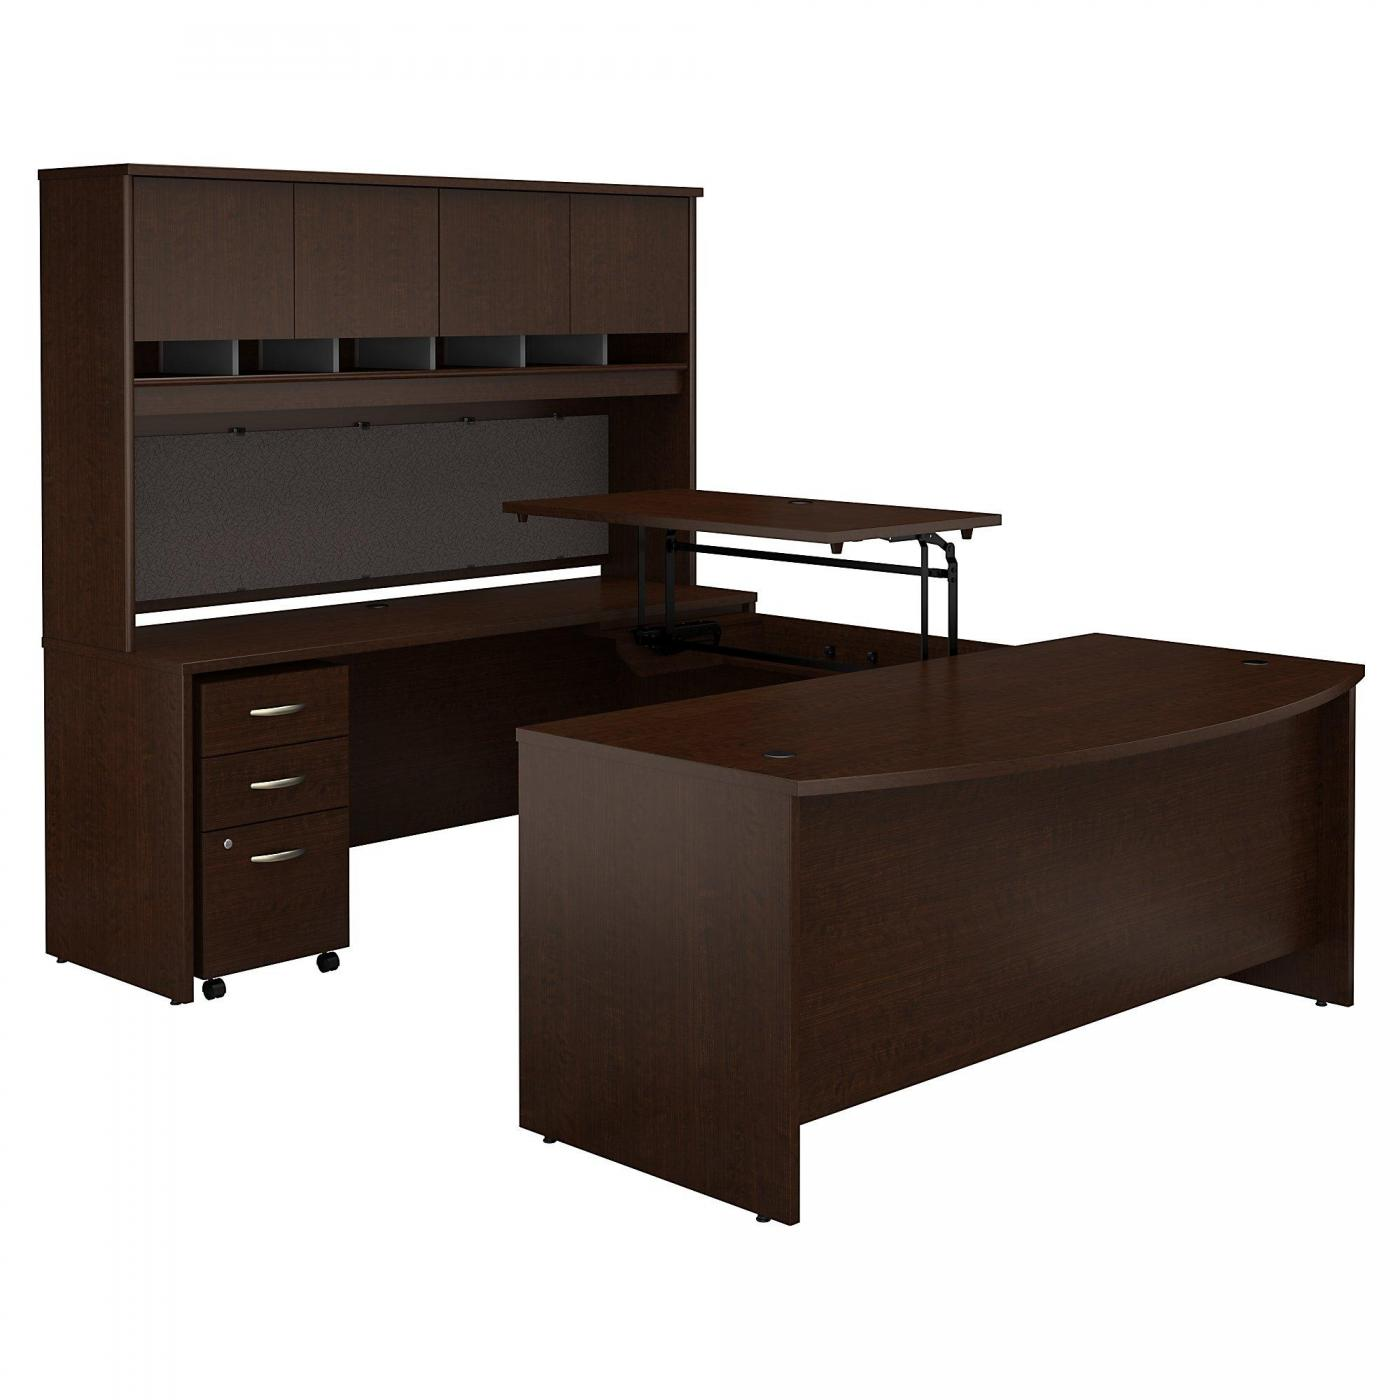 <font color=#c60><b>BUSH BUSINESS FURNITURE SERIES C 72W X 36D 3 POSITION SIT TO STAND BOW FRONT U SHAPED DESK WITH HUTCH AND MOBILE FILE CABINET. FREE SHIPPING. VIDEO:</font></b>